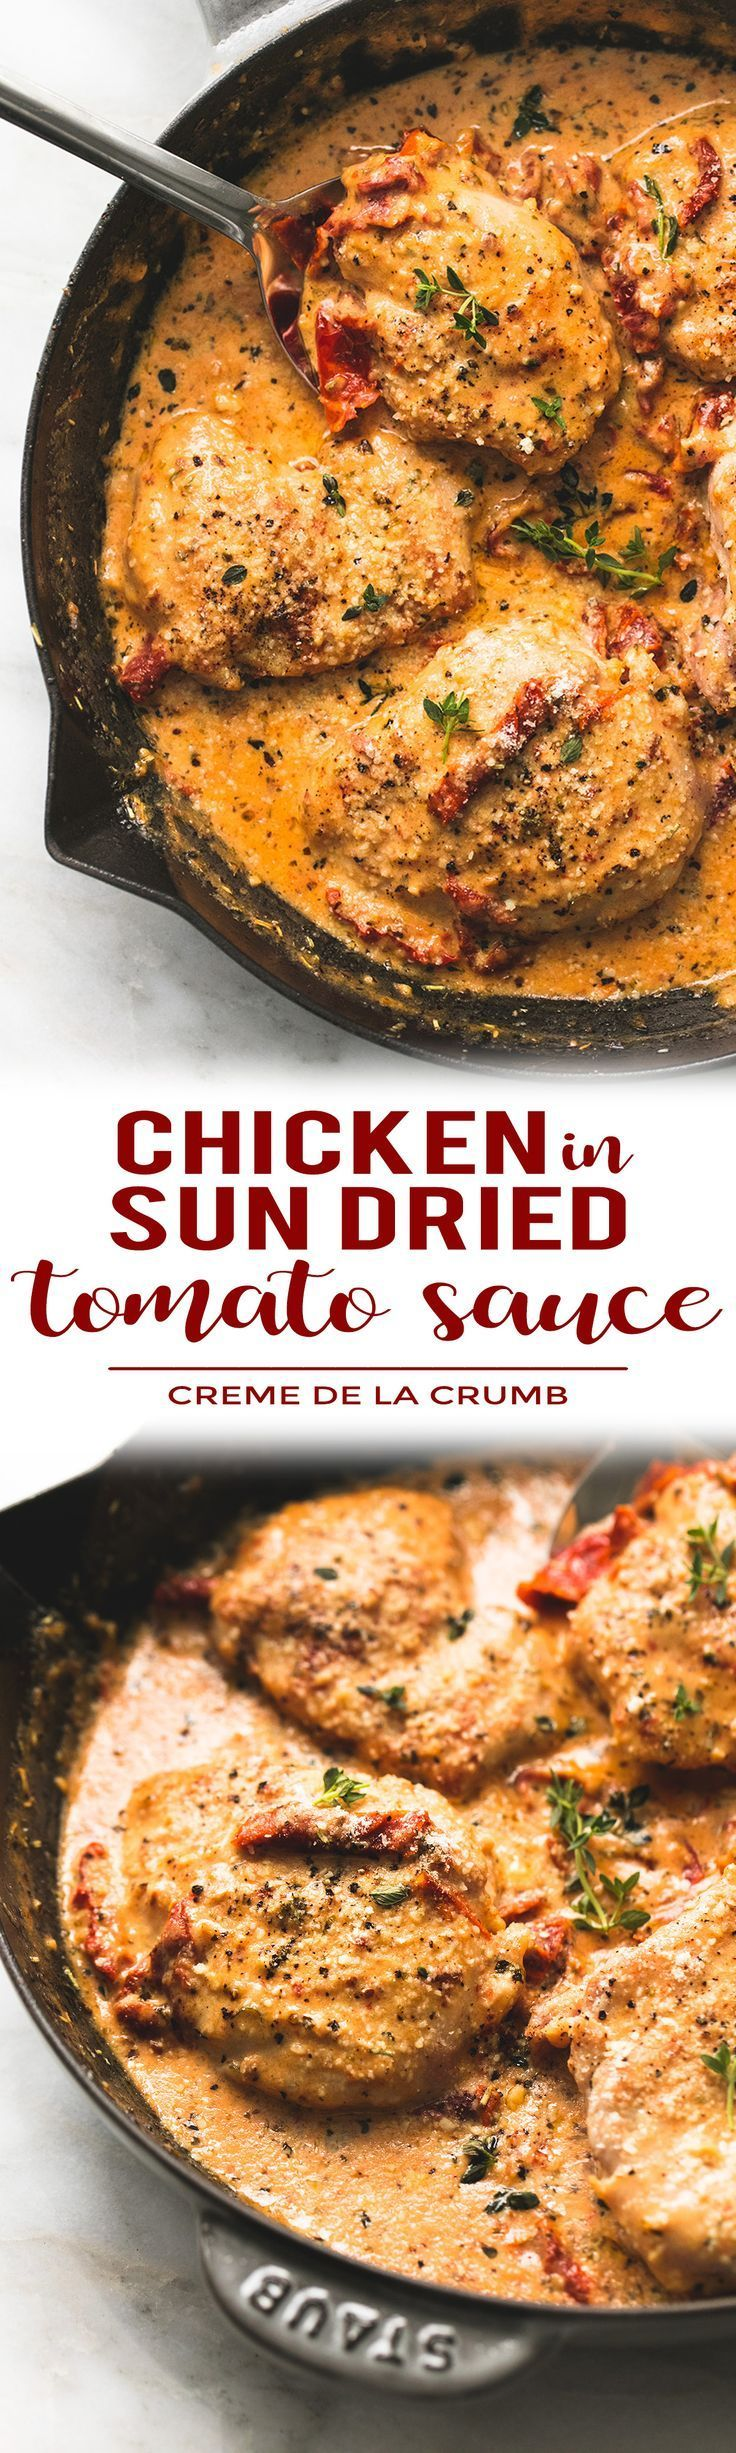 30 Minute Skillet Chicken in Creamy Sun Dried Tomato Sauce with parmesan, garlic, and fresh herbs.   lecremedelacrumb.com